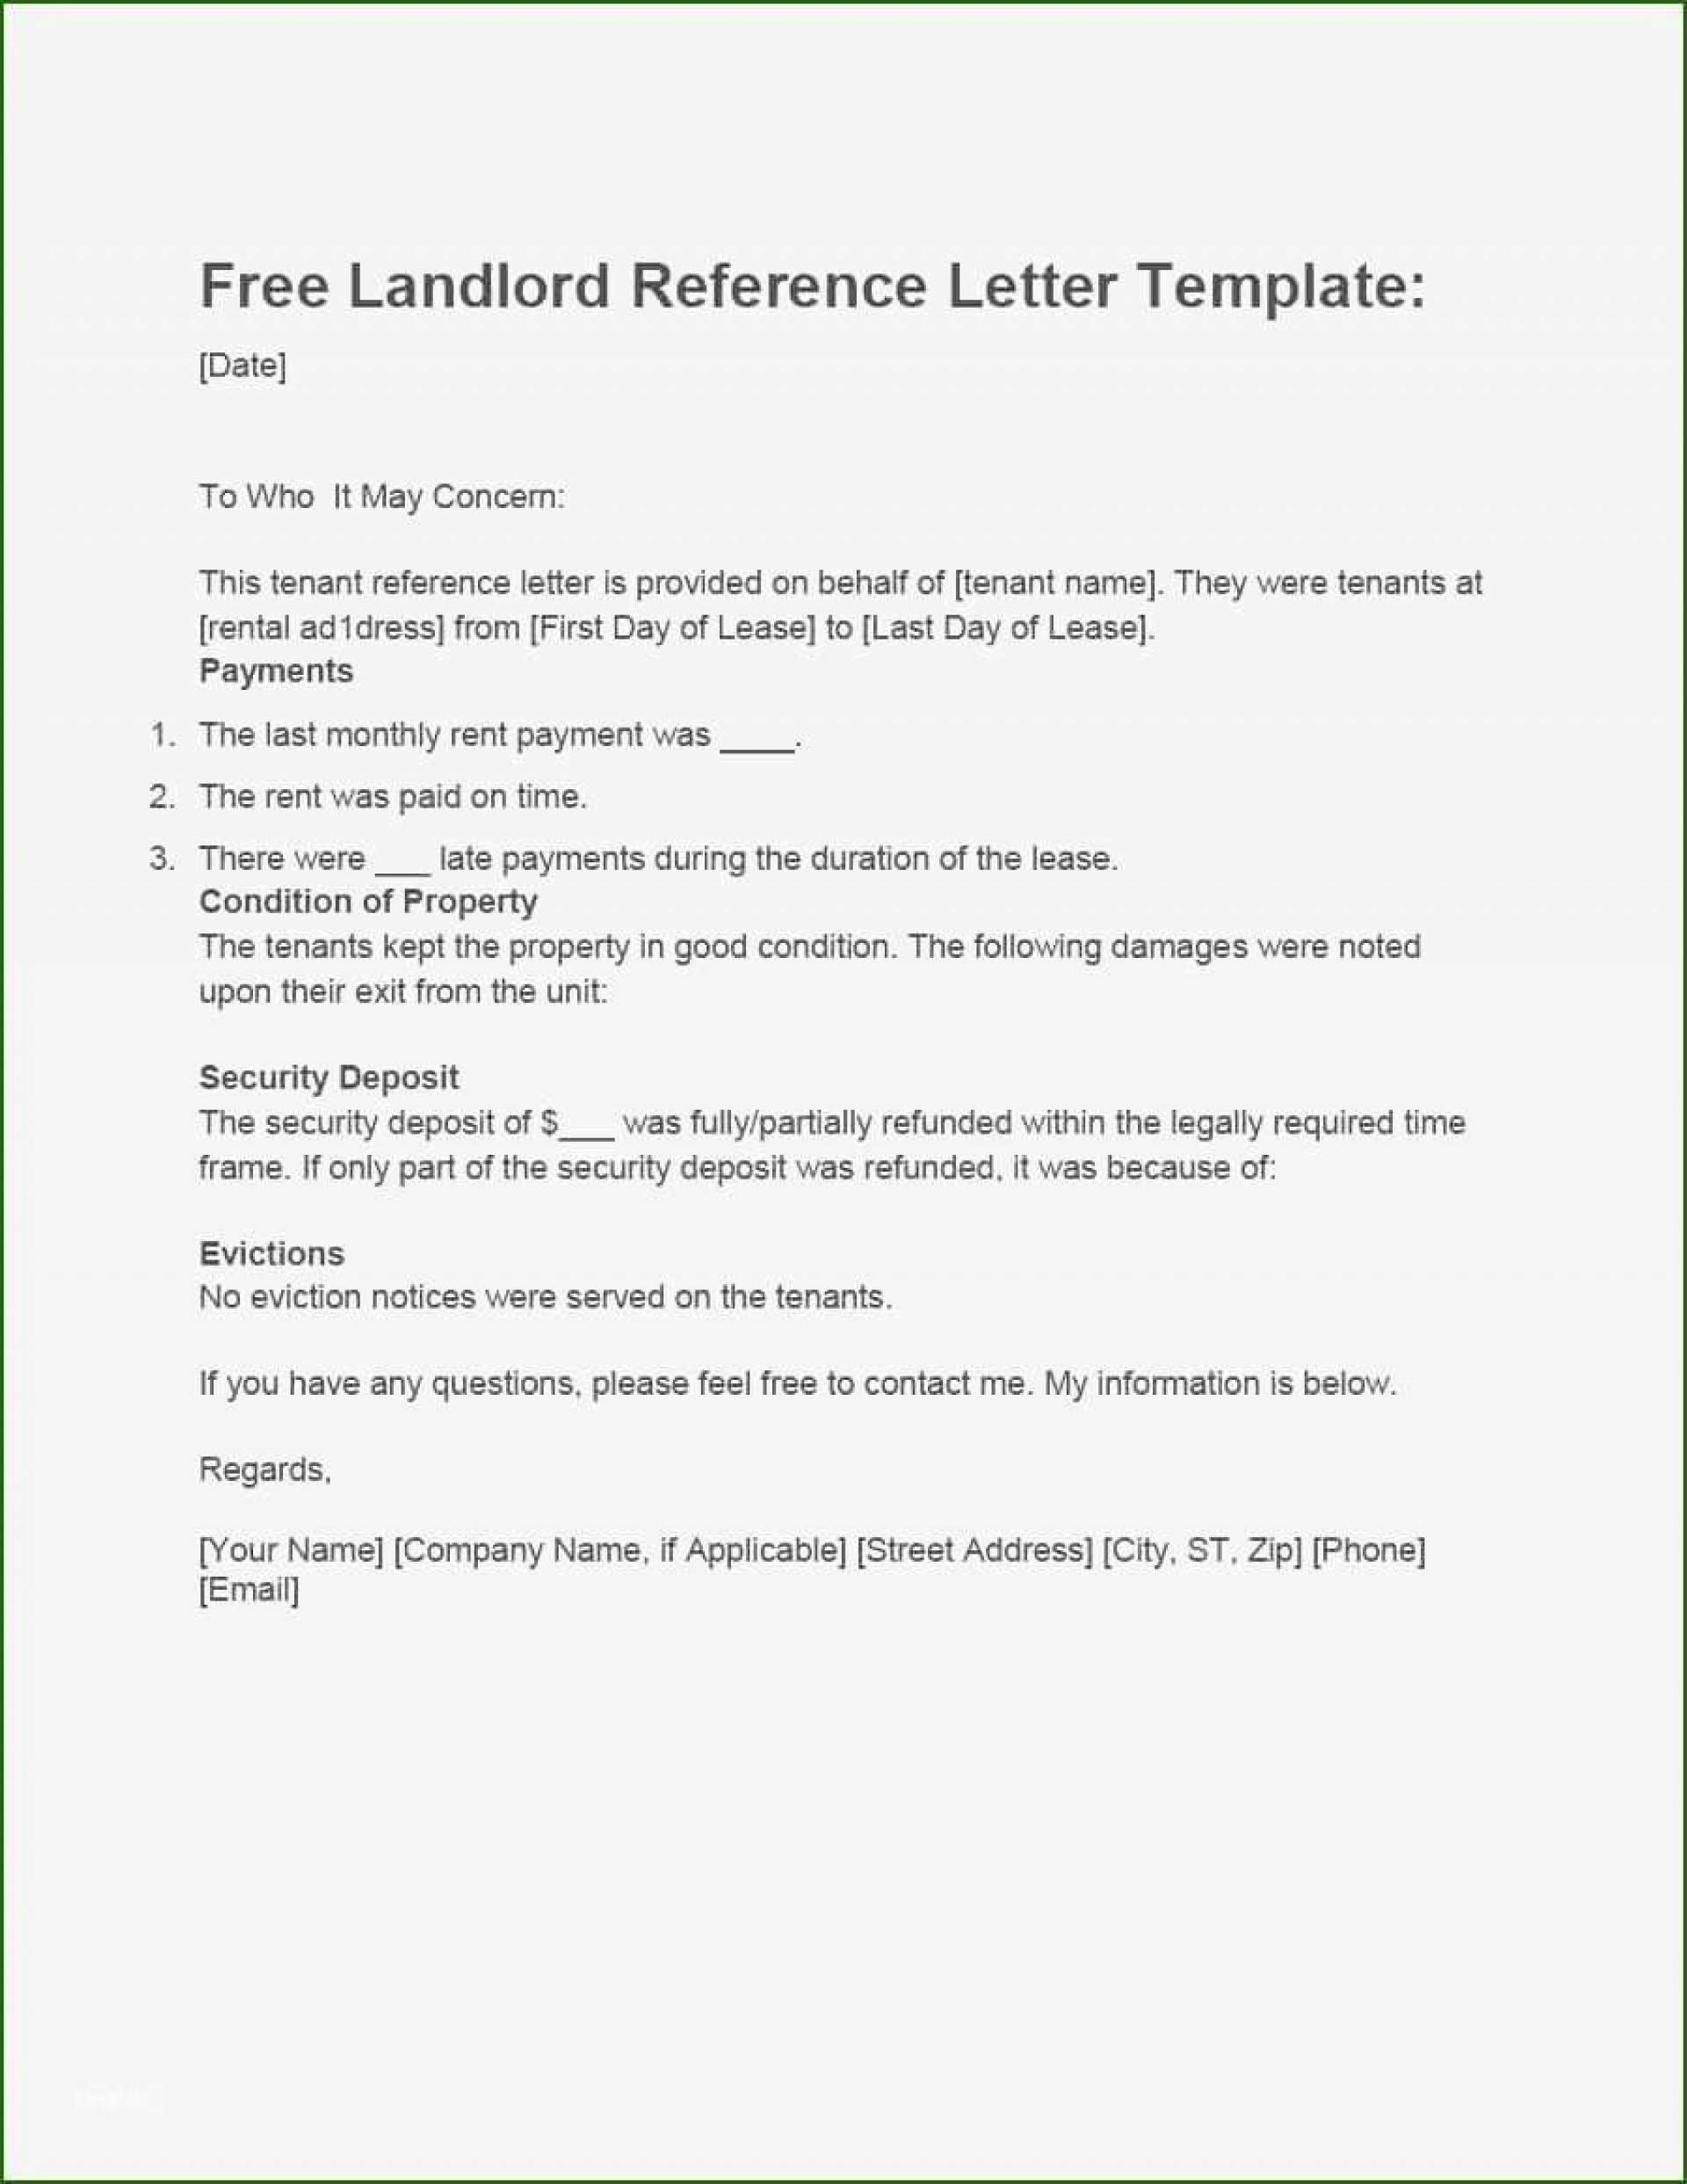 001 Magnificent Free Reference Letter Template For Landlord High Definition  Rental1920